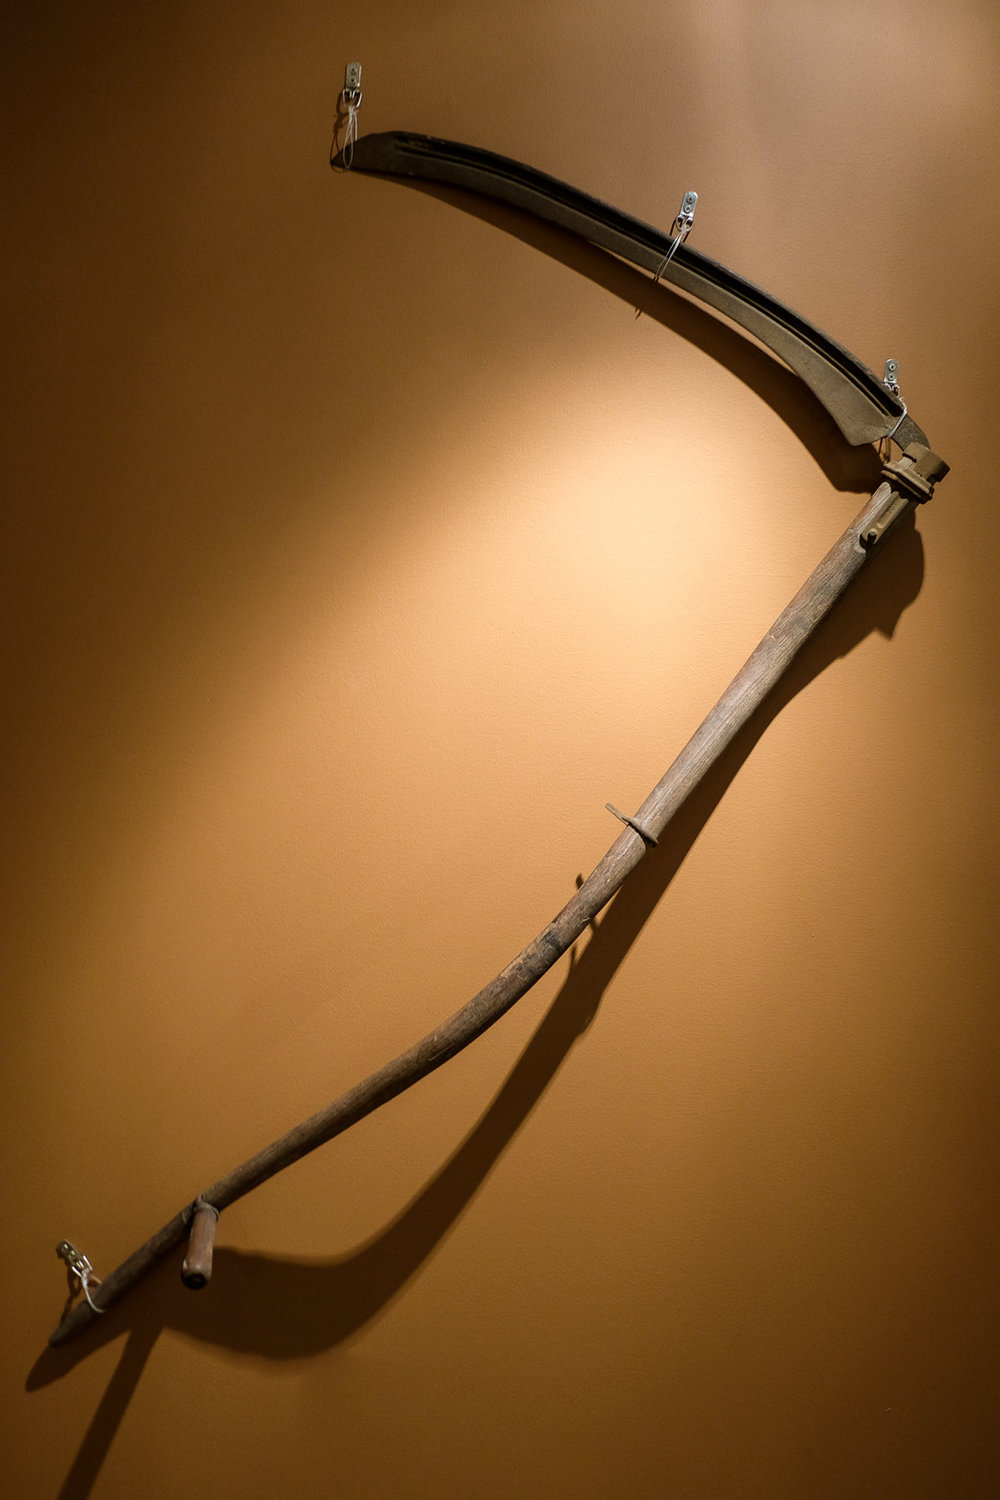 The scythe is a tool used to cut brush or wheat. This scythe belonged to Prince George's County resident Arthur Blackmon. It was purchased by his grandmother Almetta Blackmon in the mid to lat 1940s. The family farmed in the Capitol Heights area.